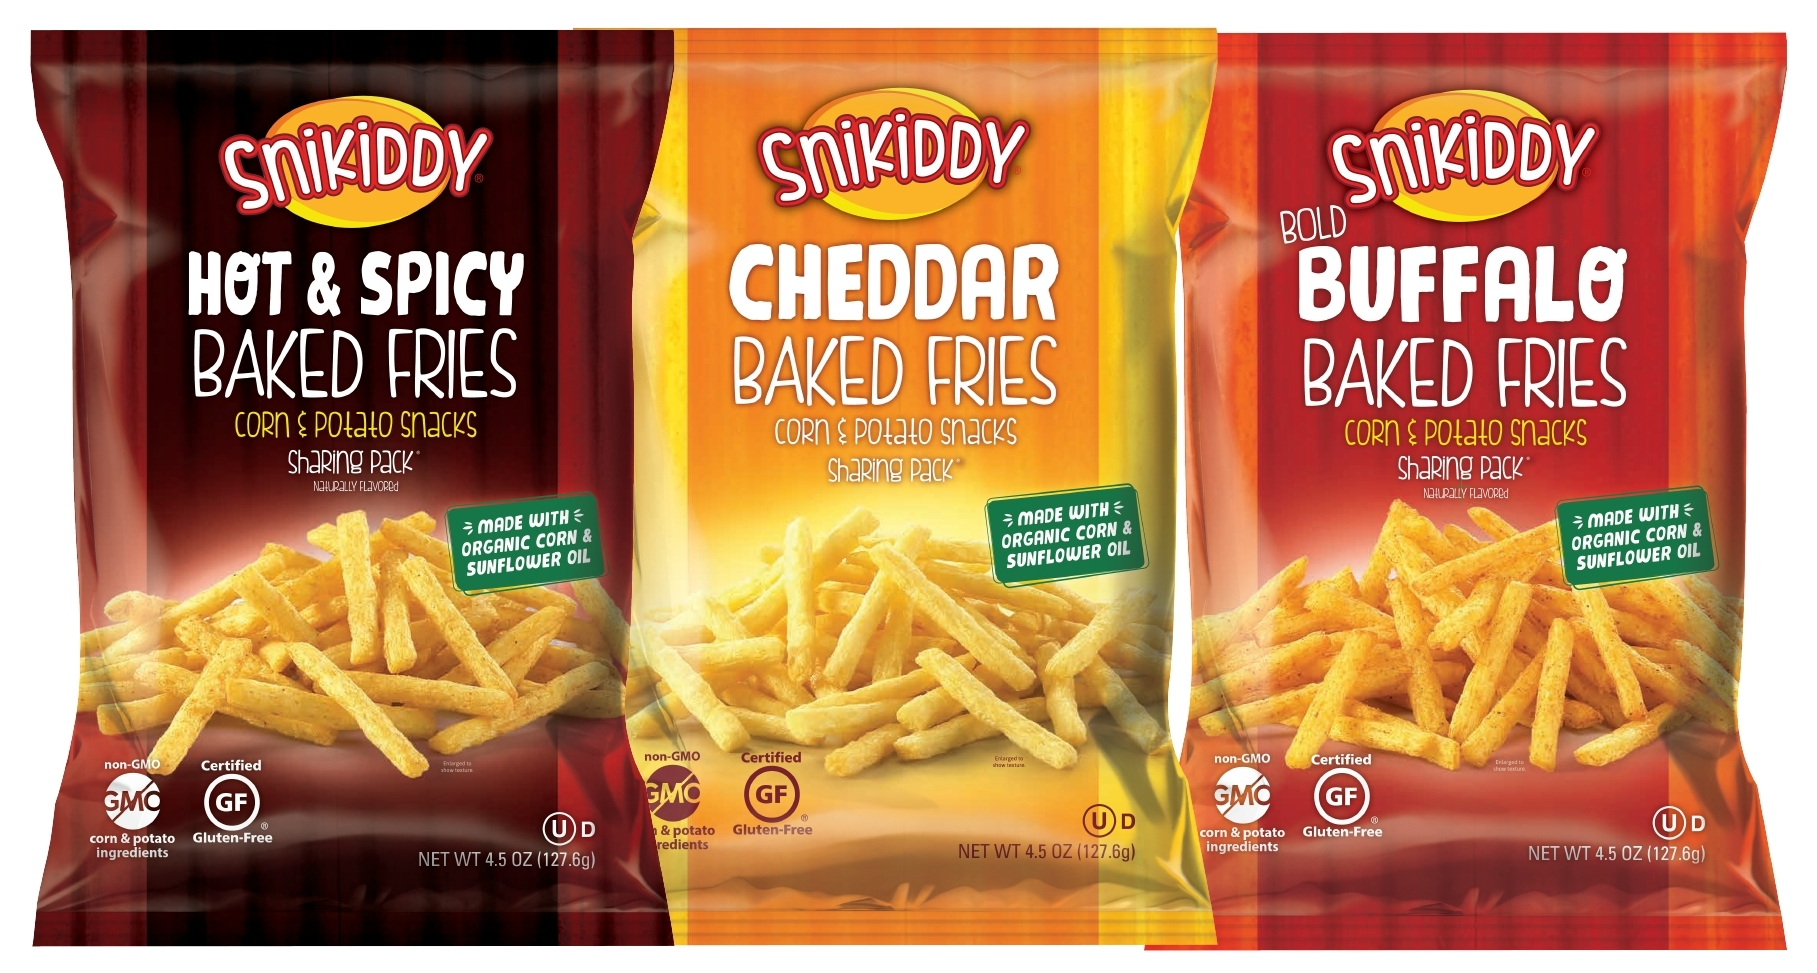 Snikiddy, a line of tasty snacks made from simple, wholesome, real-food ingredients, is revamping its beloved line of Baked Fries to now include 70 percent organic ingredients. (Photo: Business Wire)